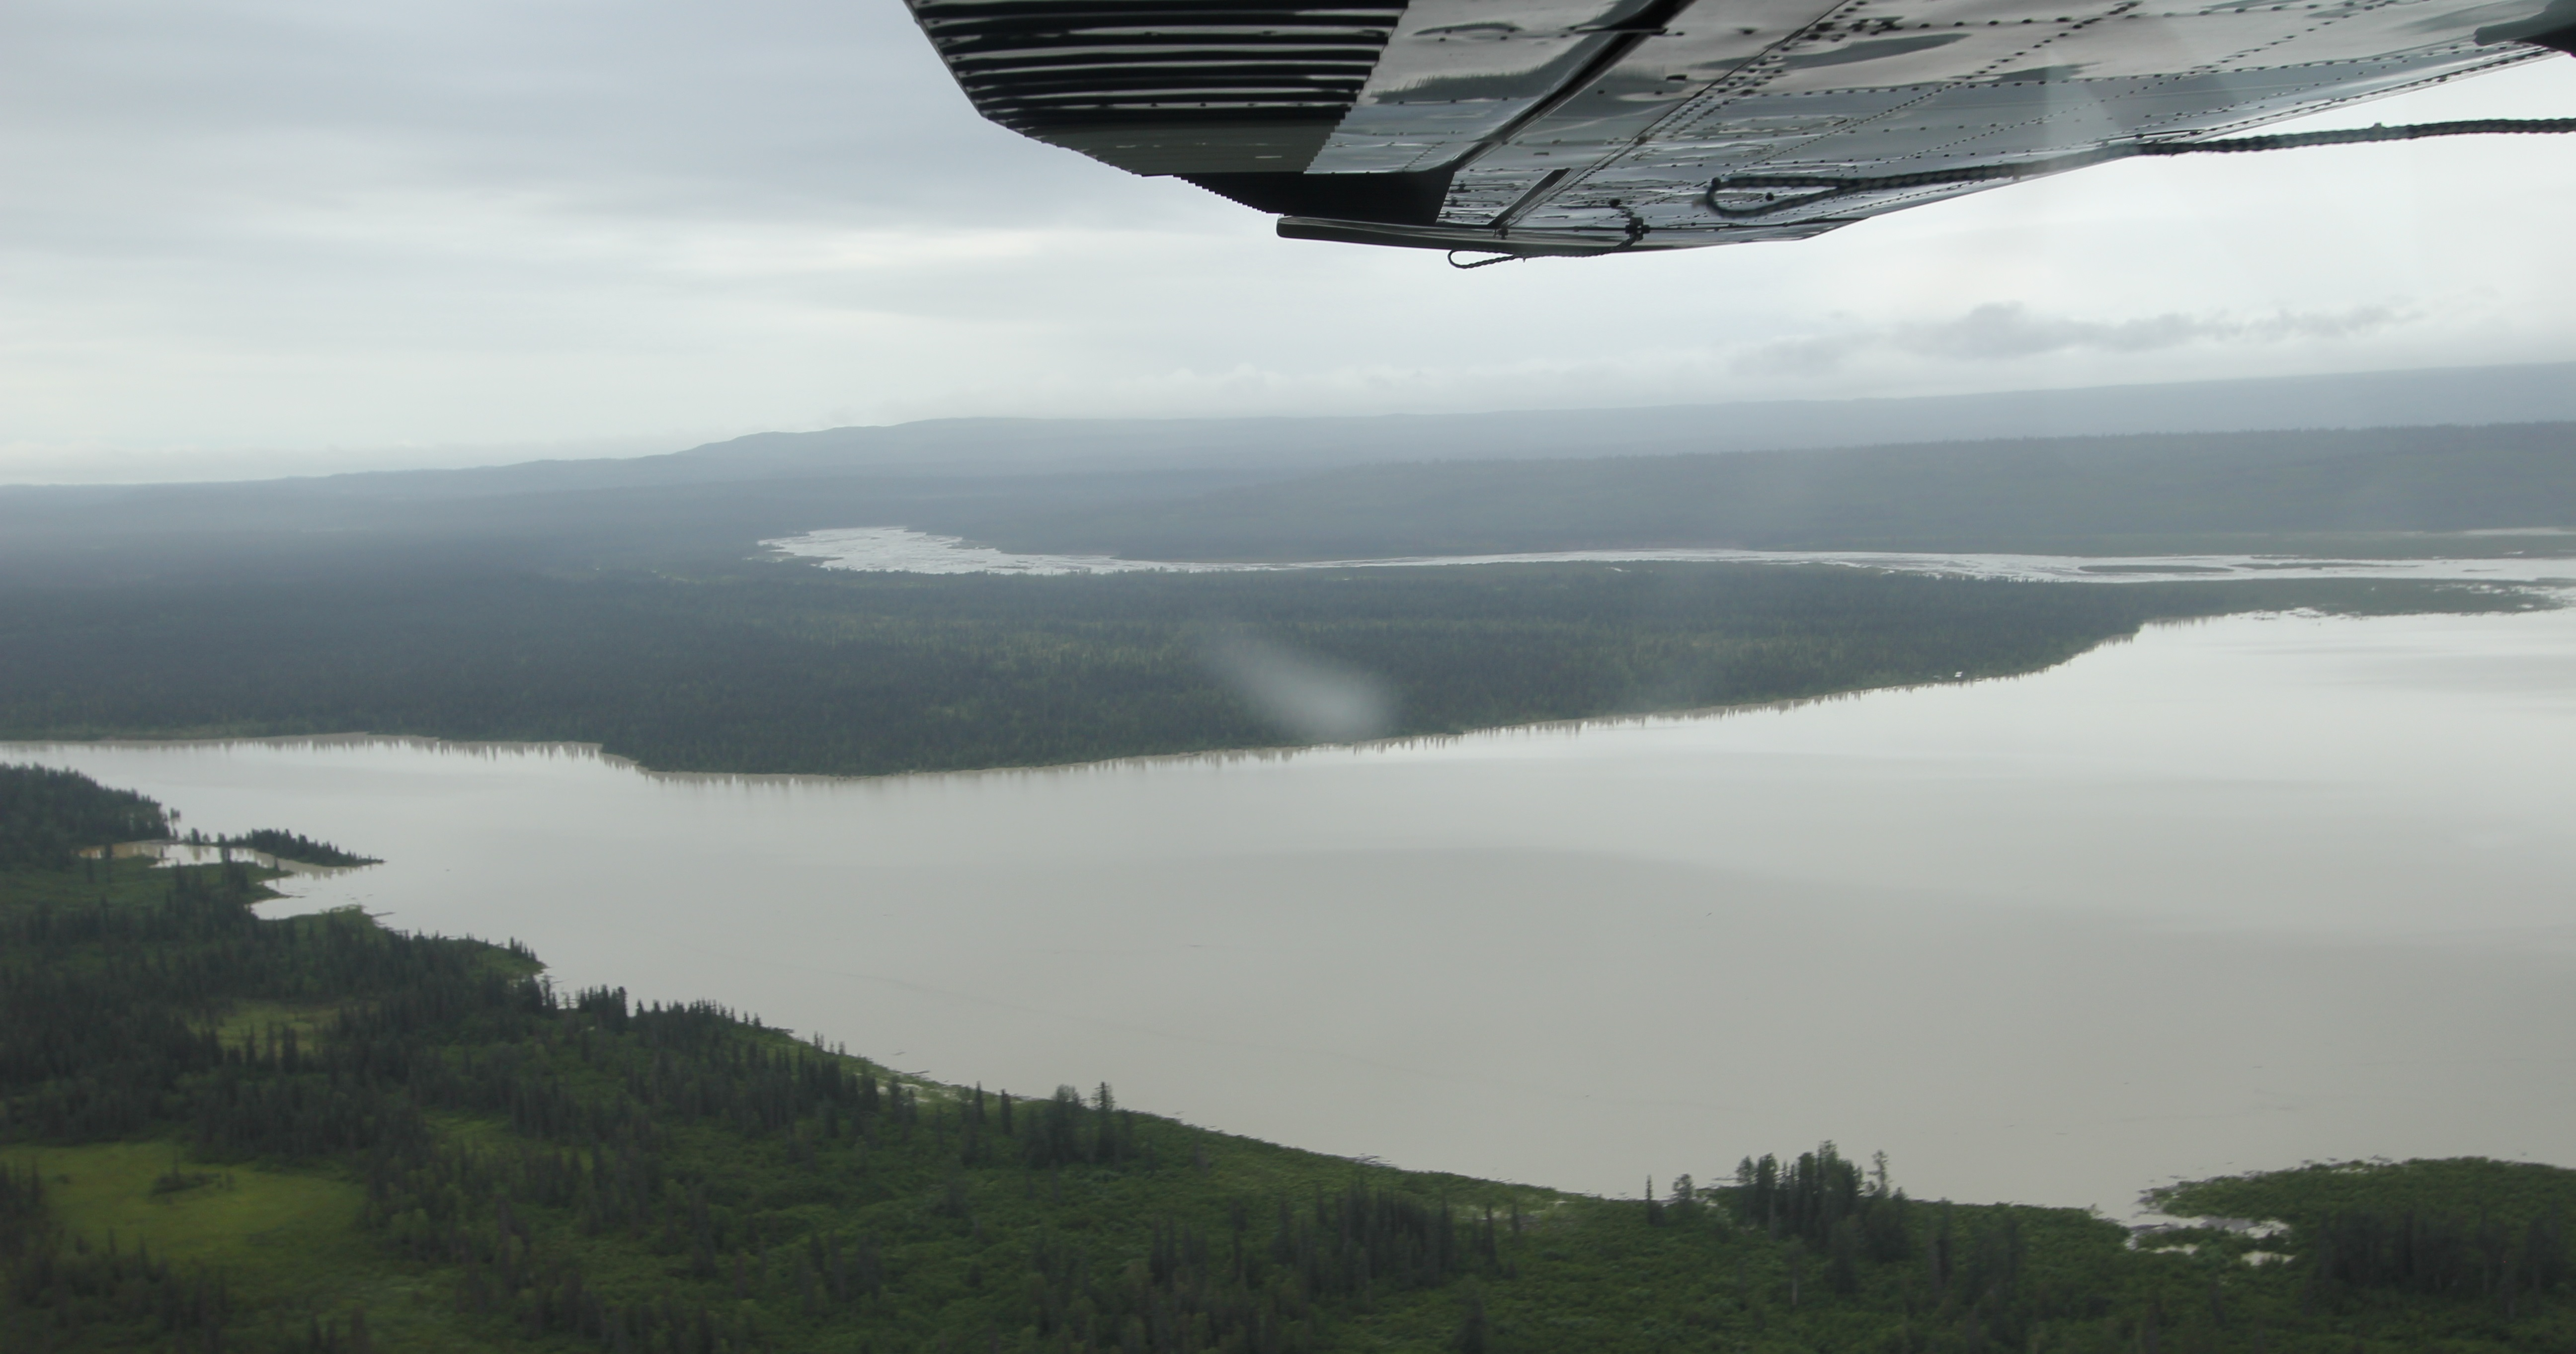 Heading west, looking south. Beluga Lake with the start of the Beluga Rover to the left, with the Chichantna River flowing left to right in the background.]